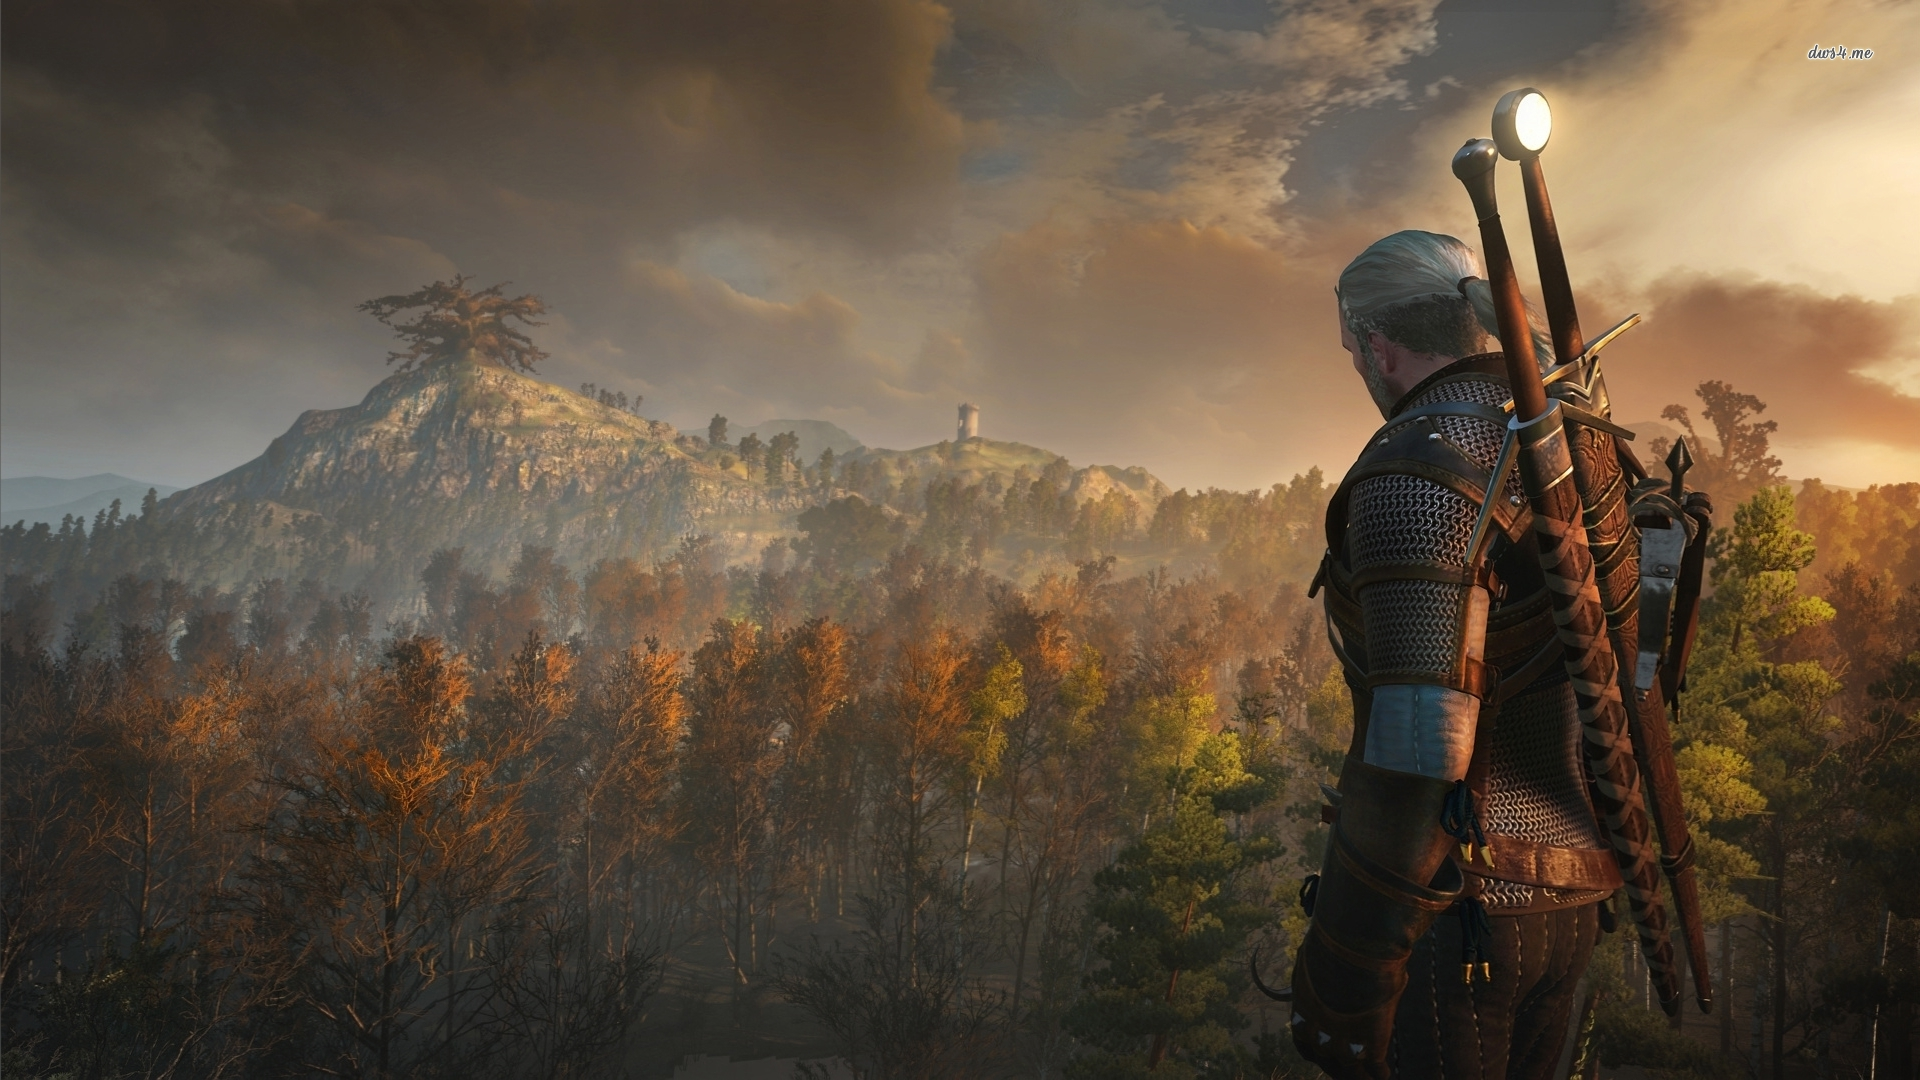 Girl Boss Wallpaper Hd The Witcher 3 Wallpaper 30 Wallpapers Adorable Wallpapers